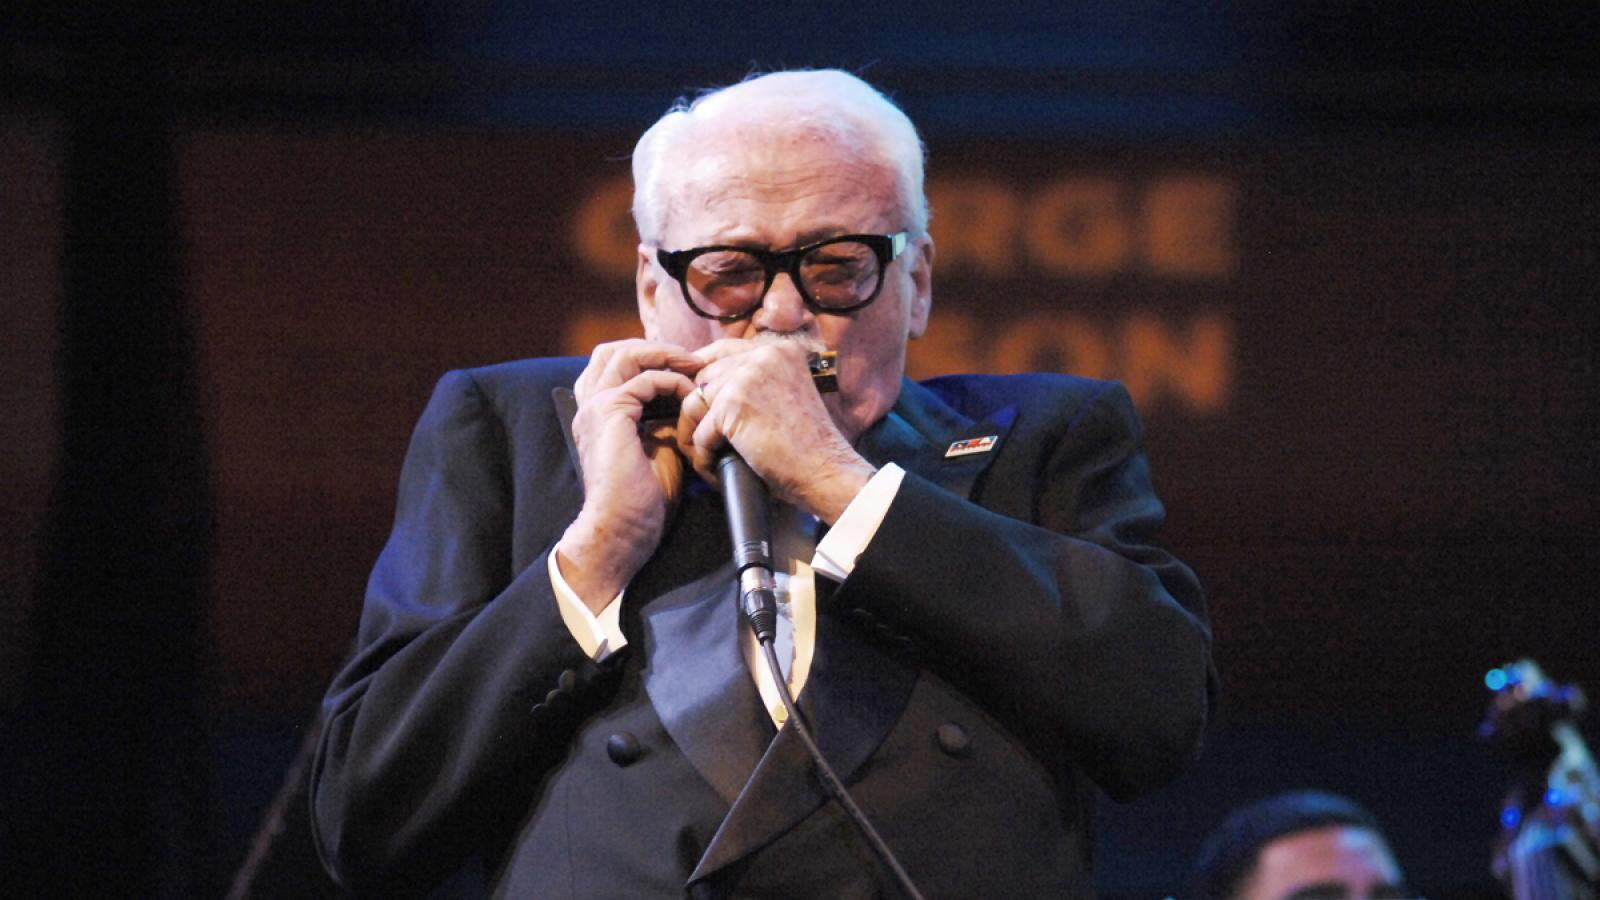 Toots Thielemans performs on the harmonica